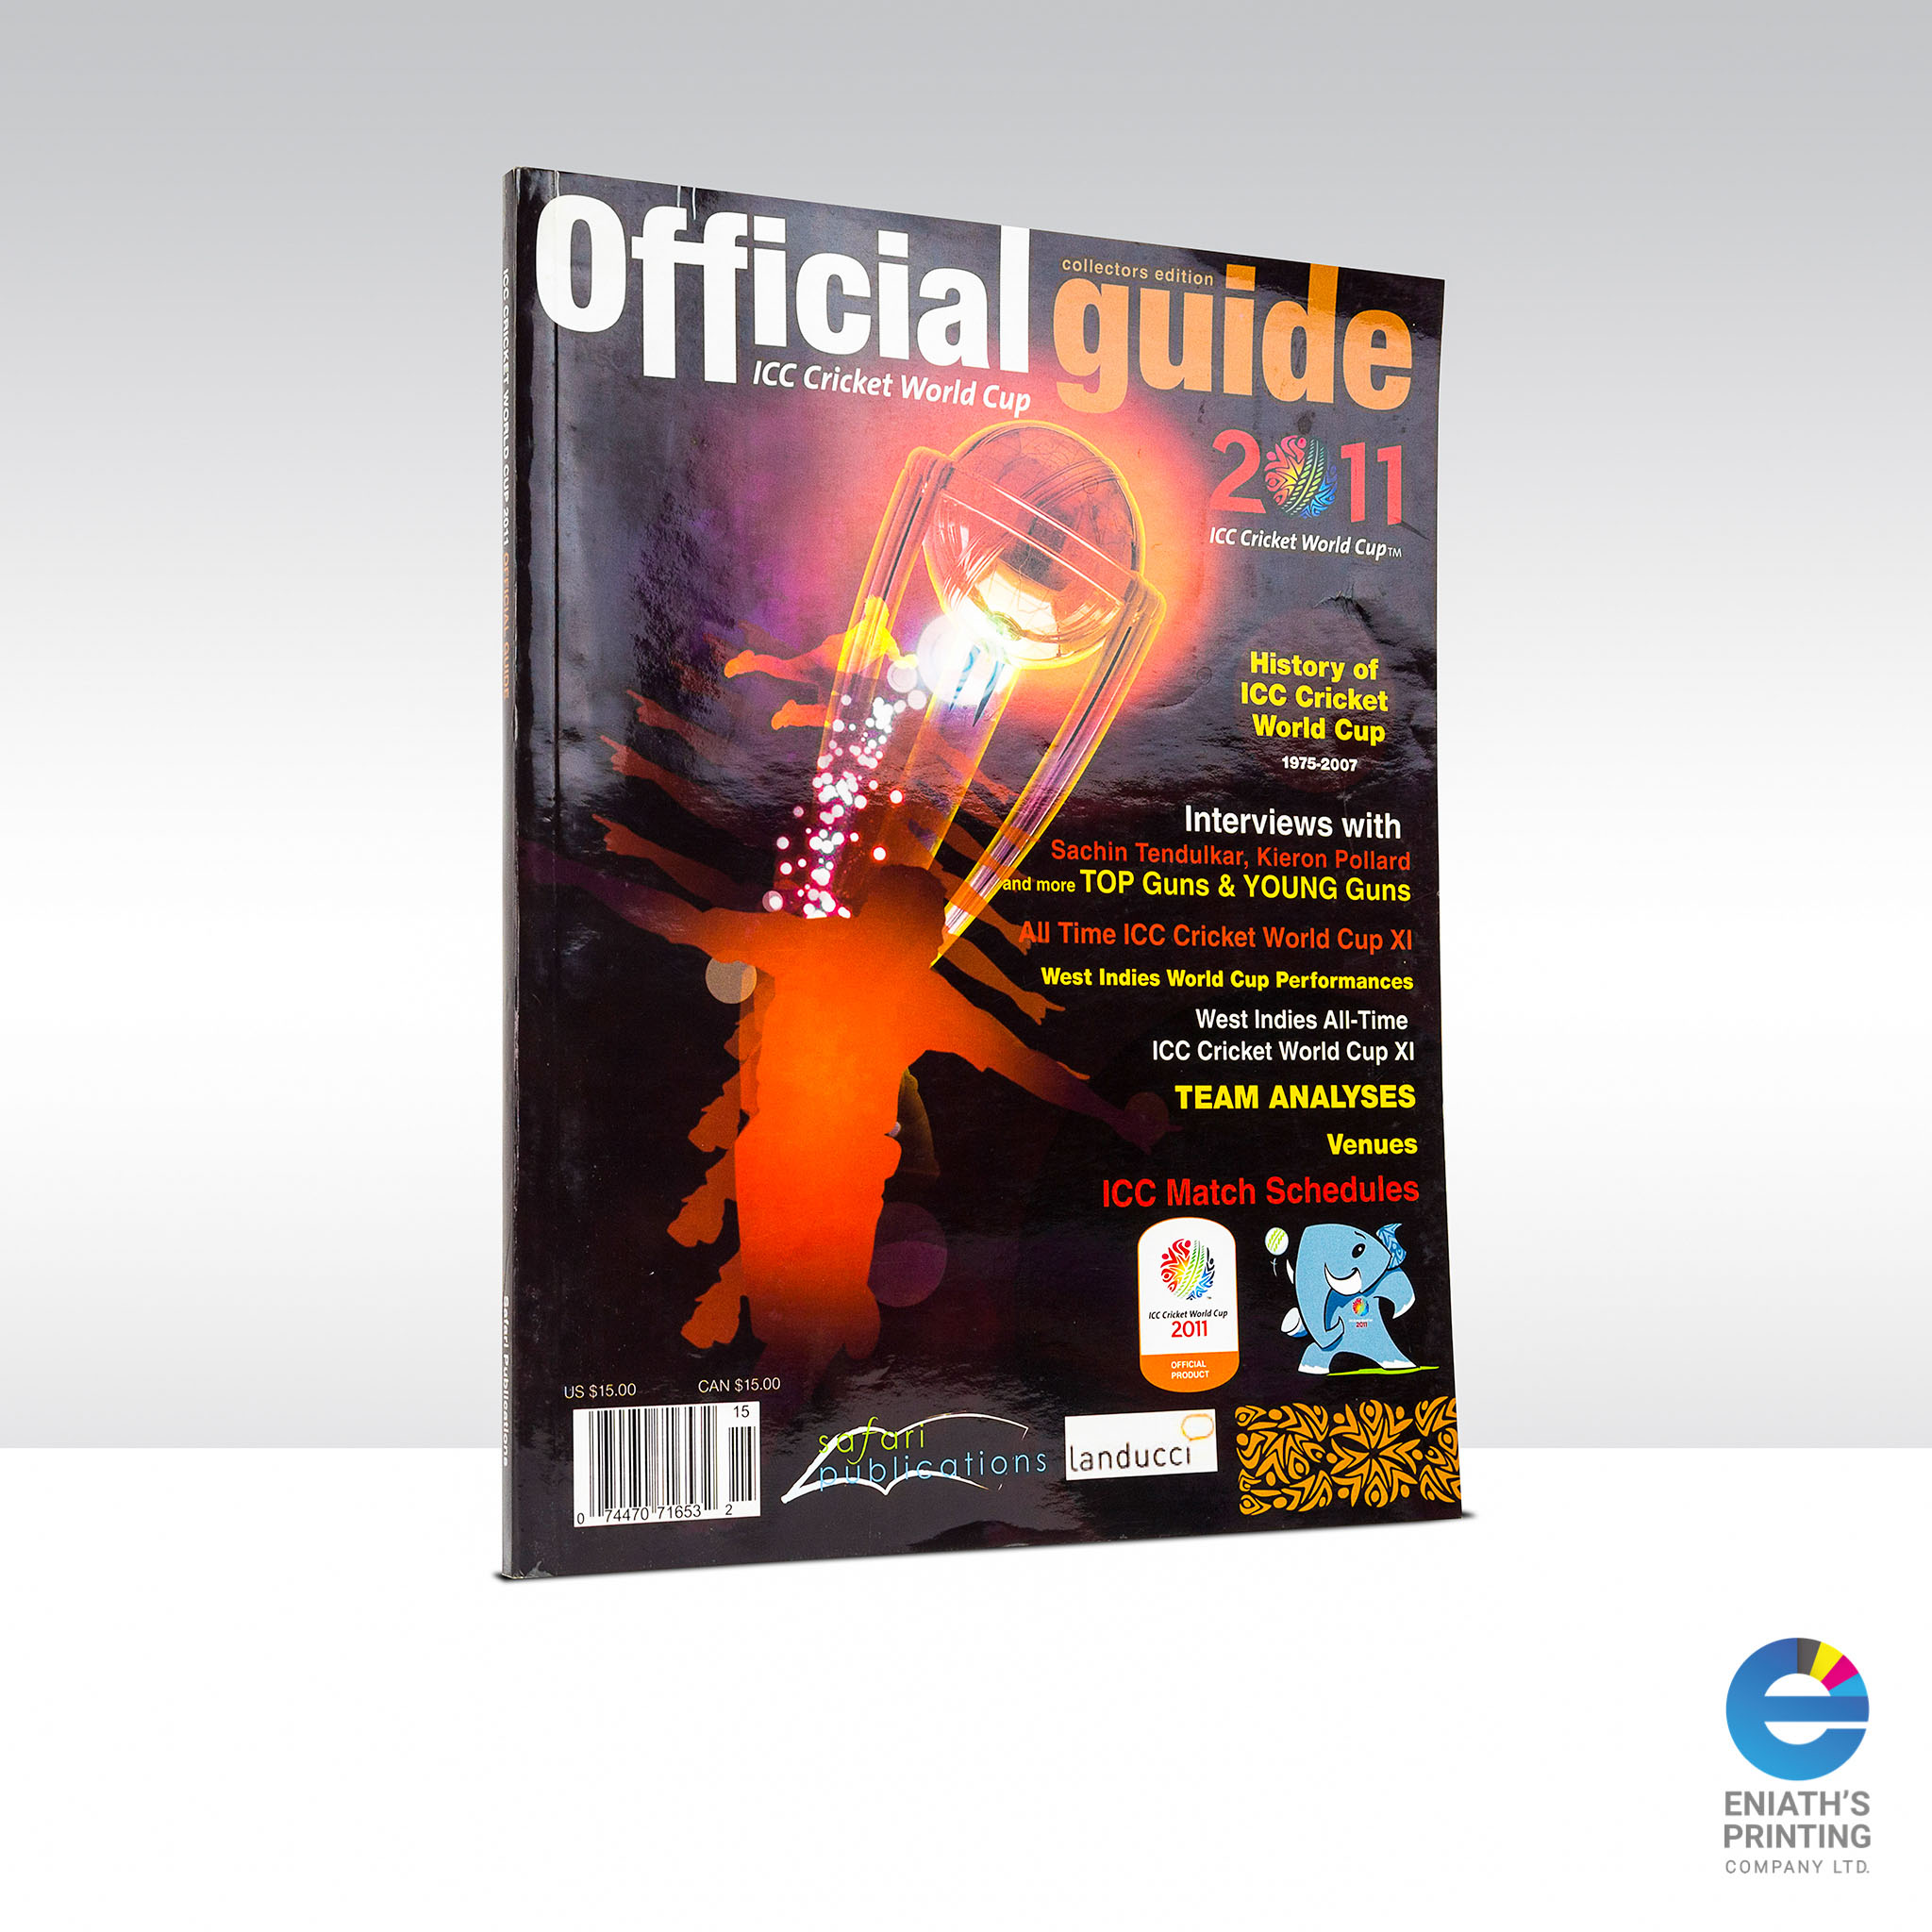 ICC Cricket World Cup 2011 Official Guide - Printed by Eniath's Printing Co. Ltd.